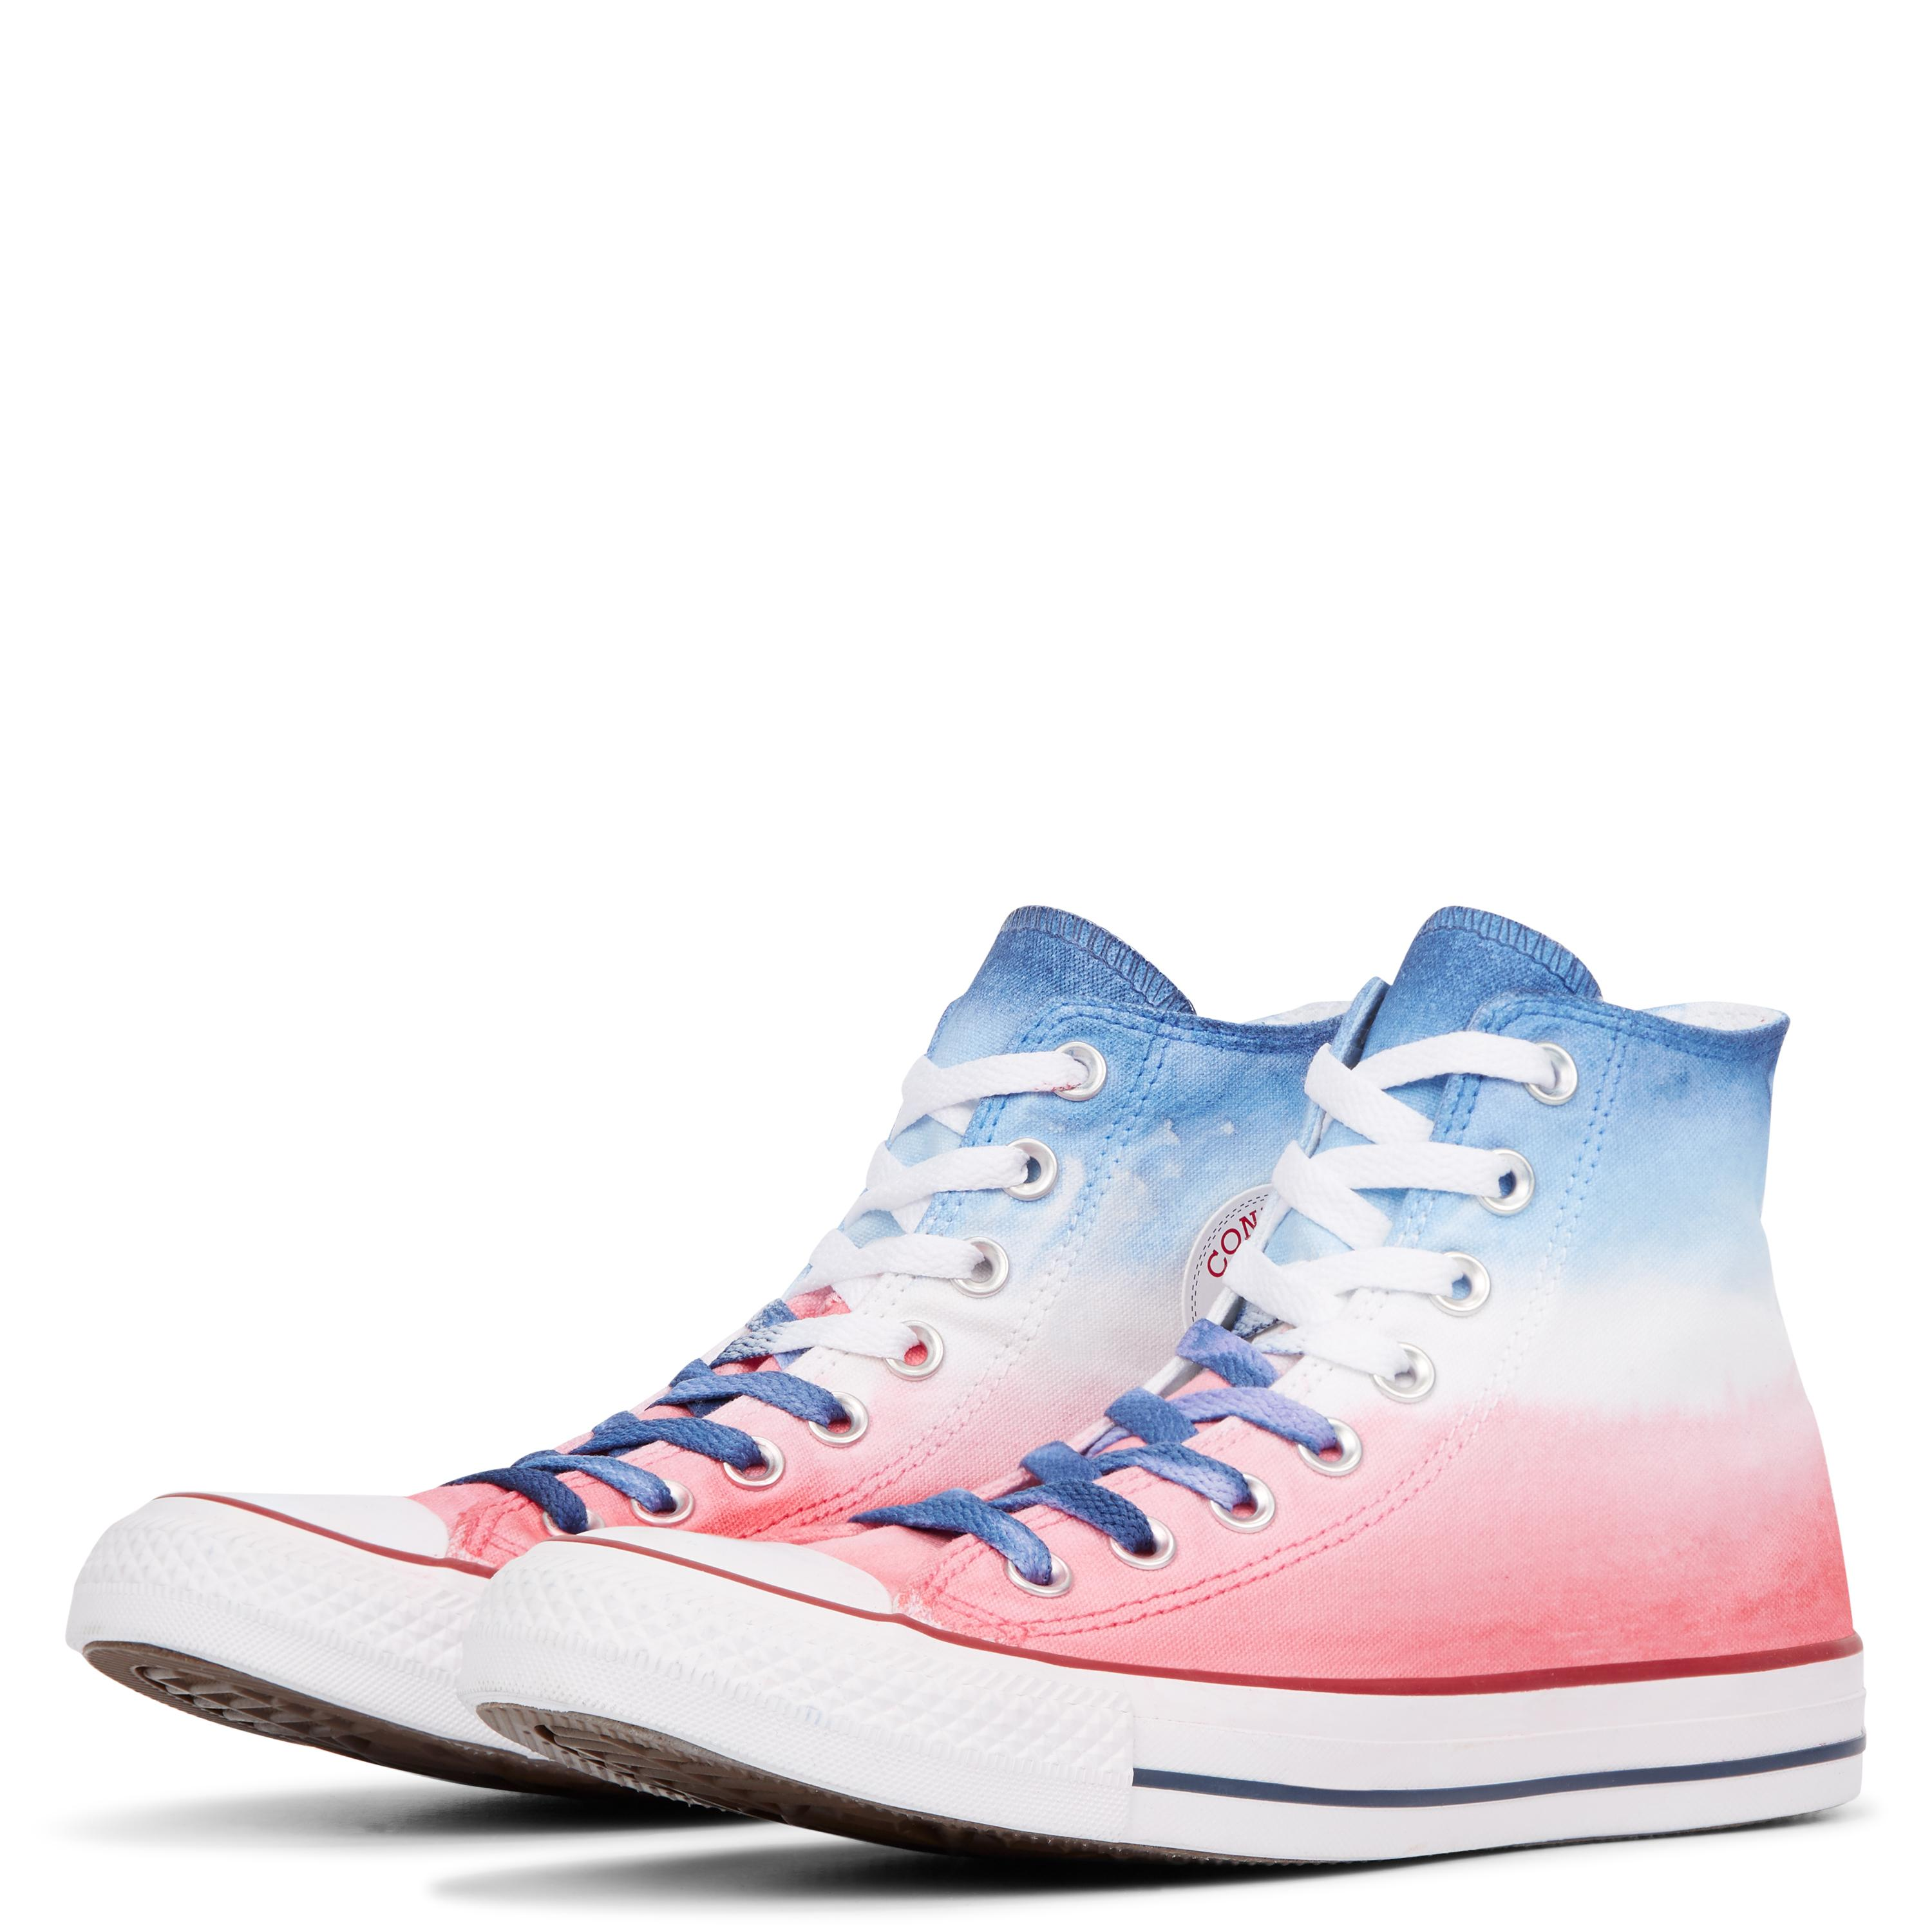 90c053ce86846e Converse Chuck Taylor All Star Dip Dye High Top in Blue for Men - Lyst